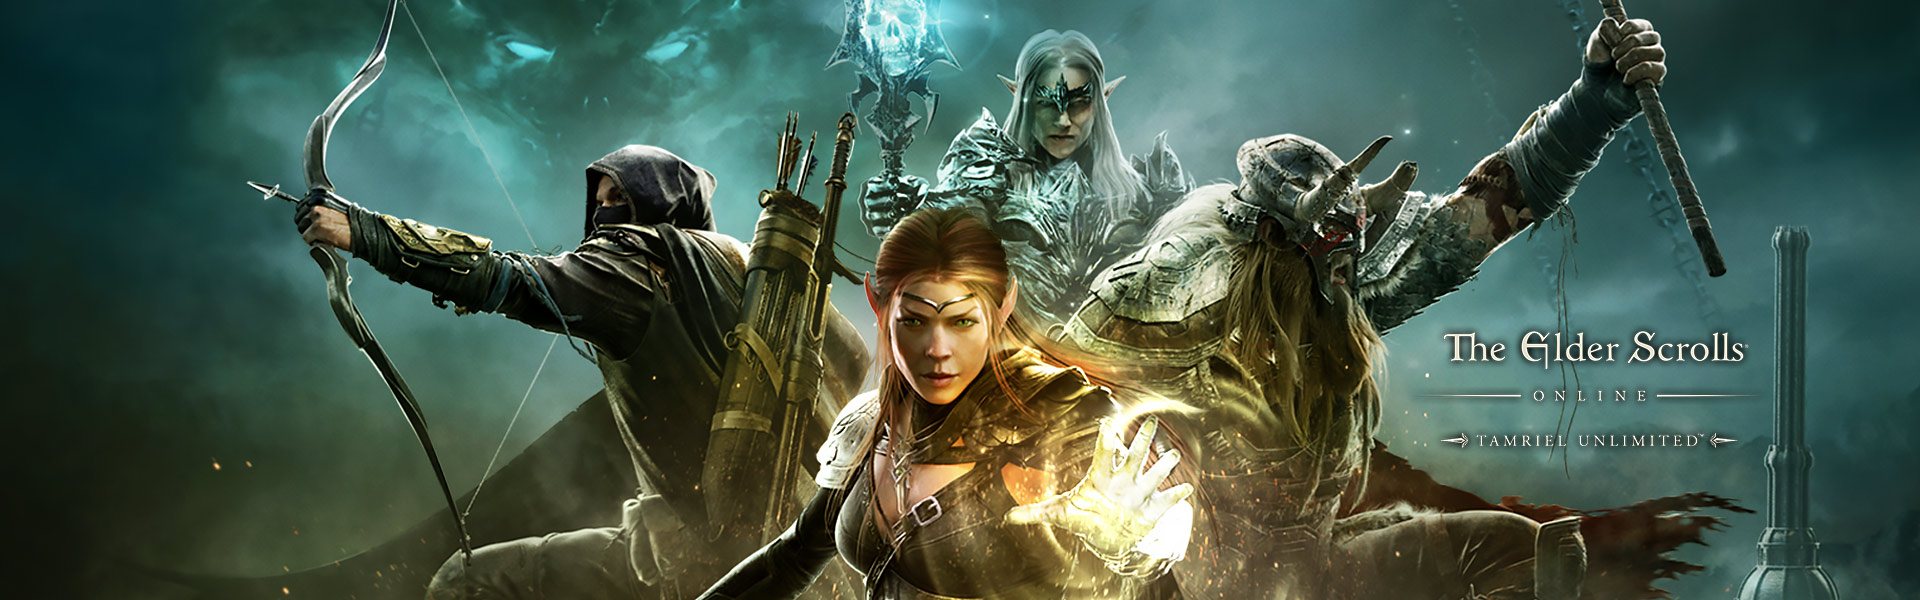 The Elder Scrolls Online: Tamriel Unlimited, quattro personaggi in piedi pronti a combattere